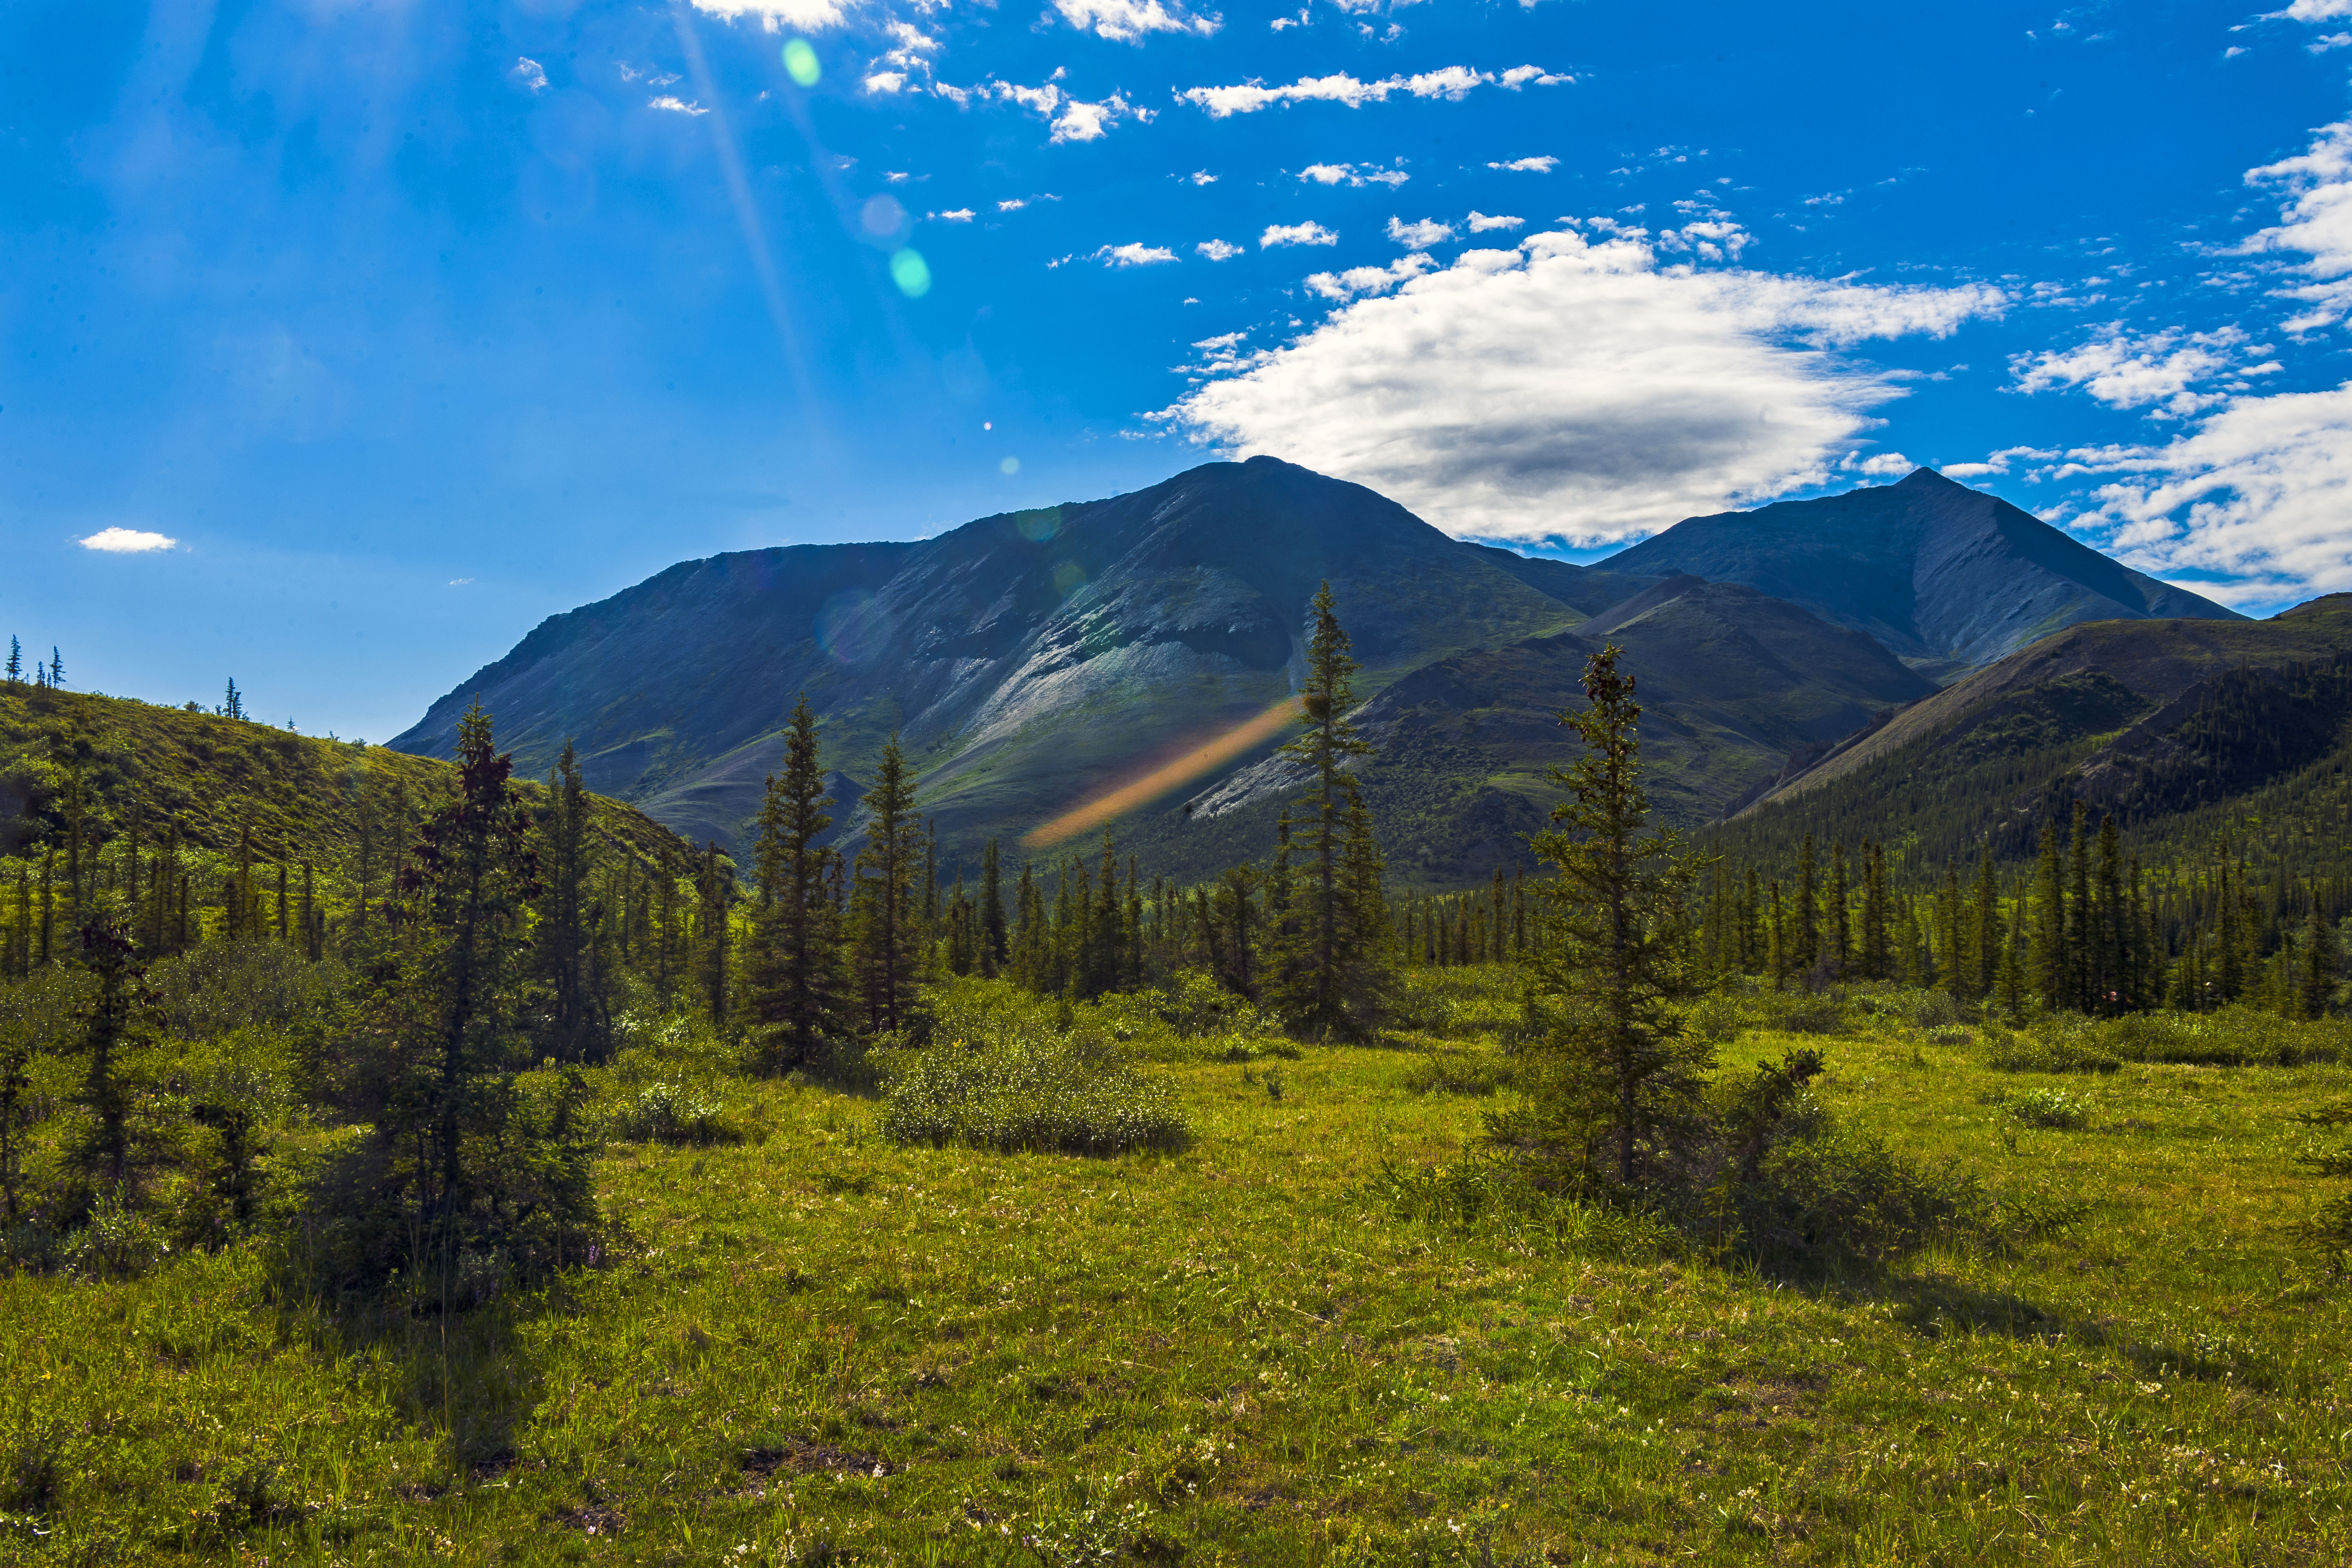 File Tundra Landscape With Clouds Trees Mountains And Lens